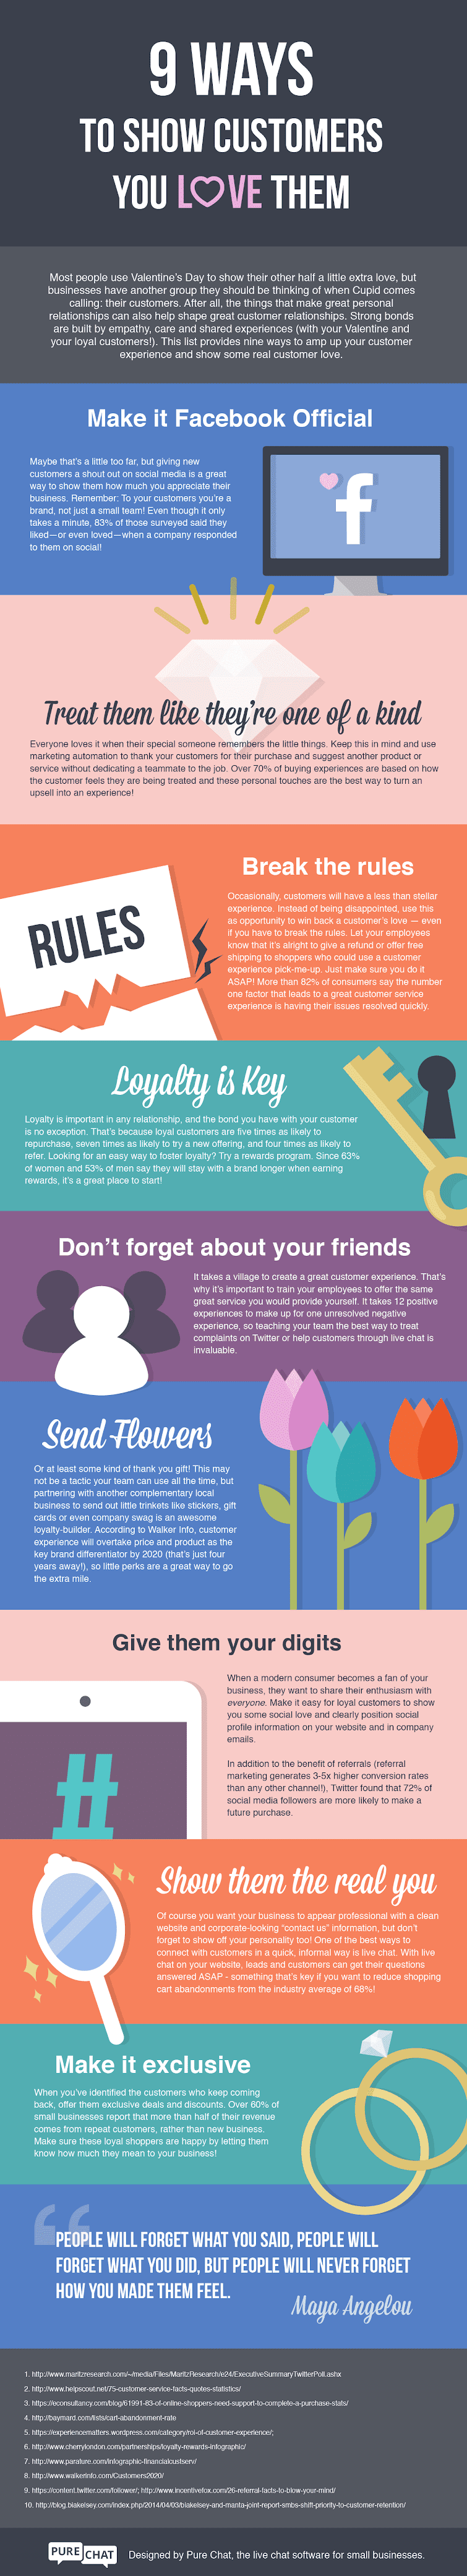 9 Ways To Show Customers You Love Them #infographic